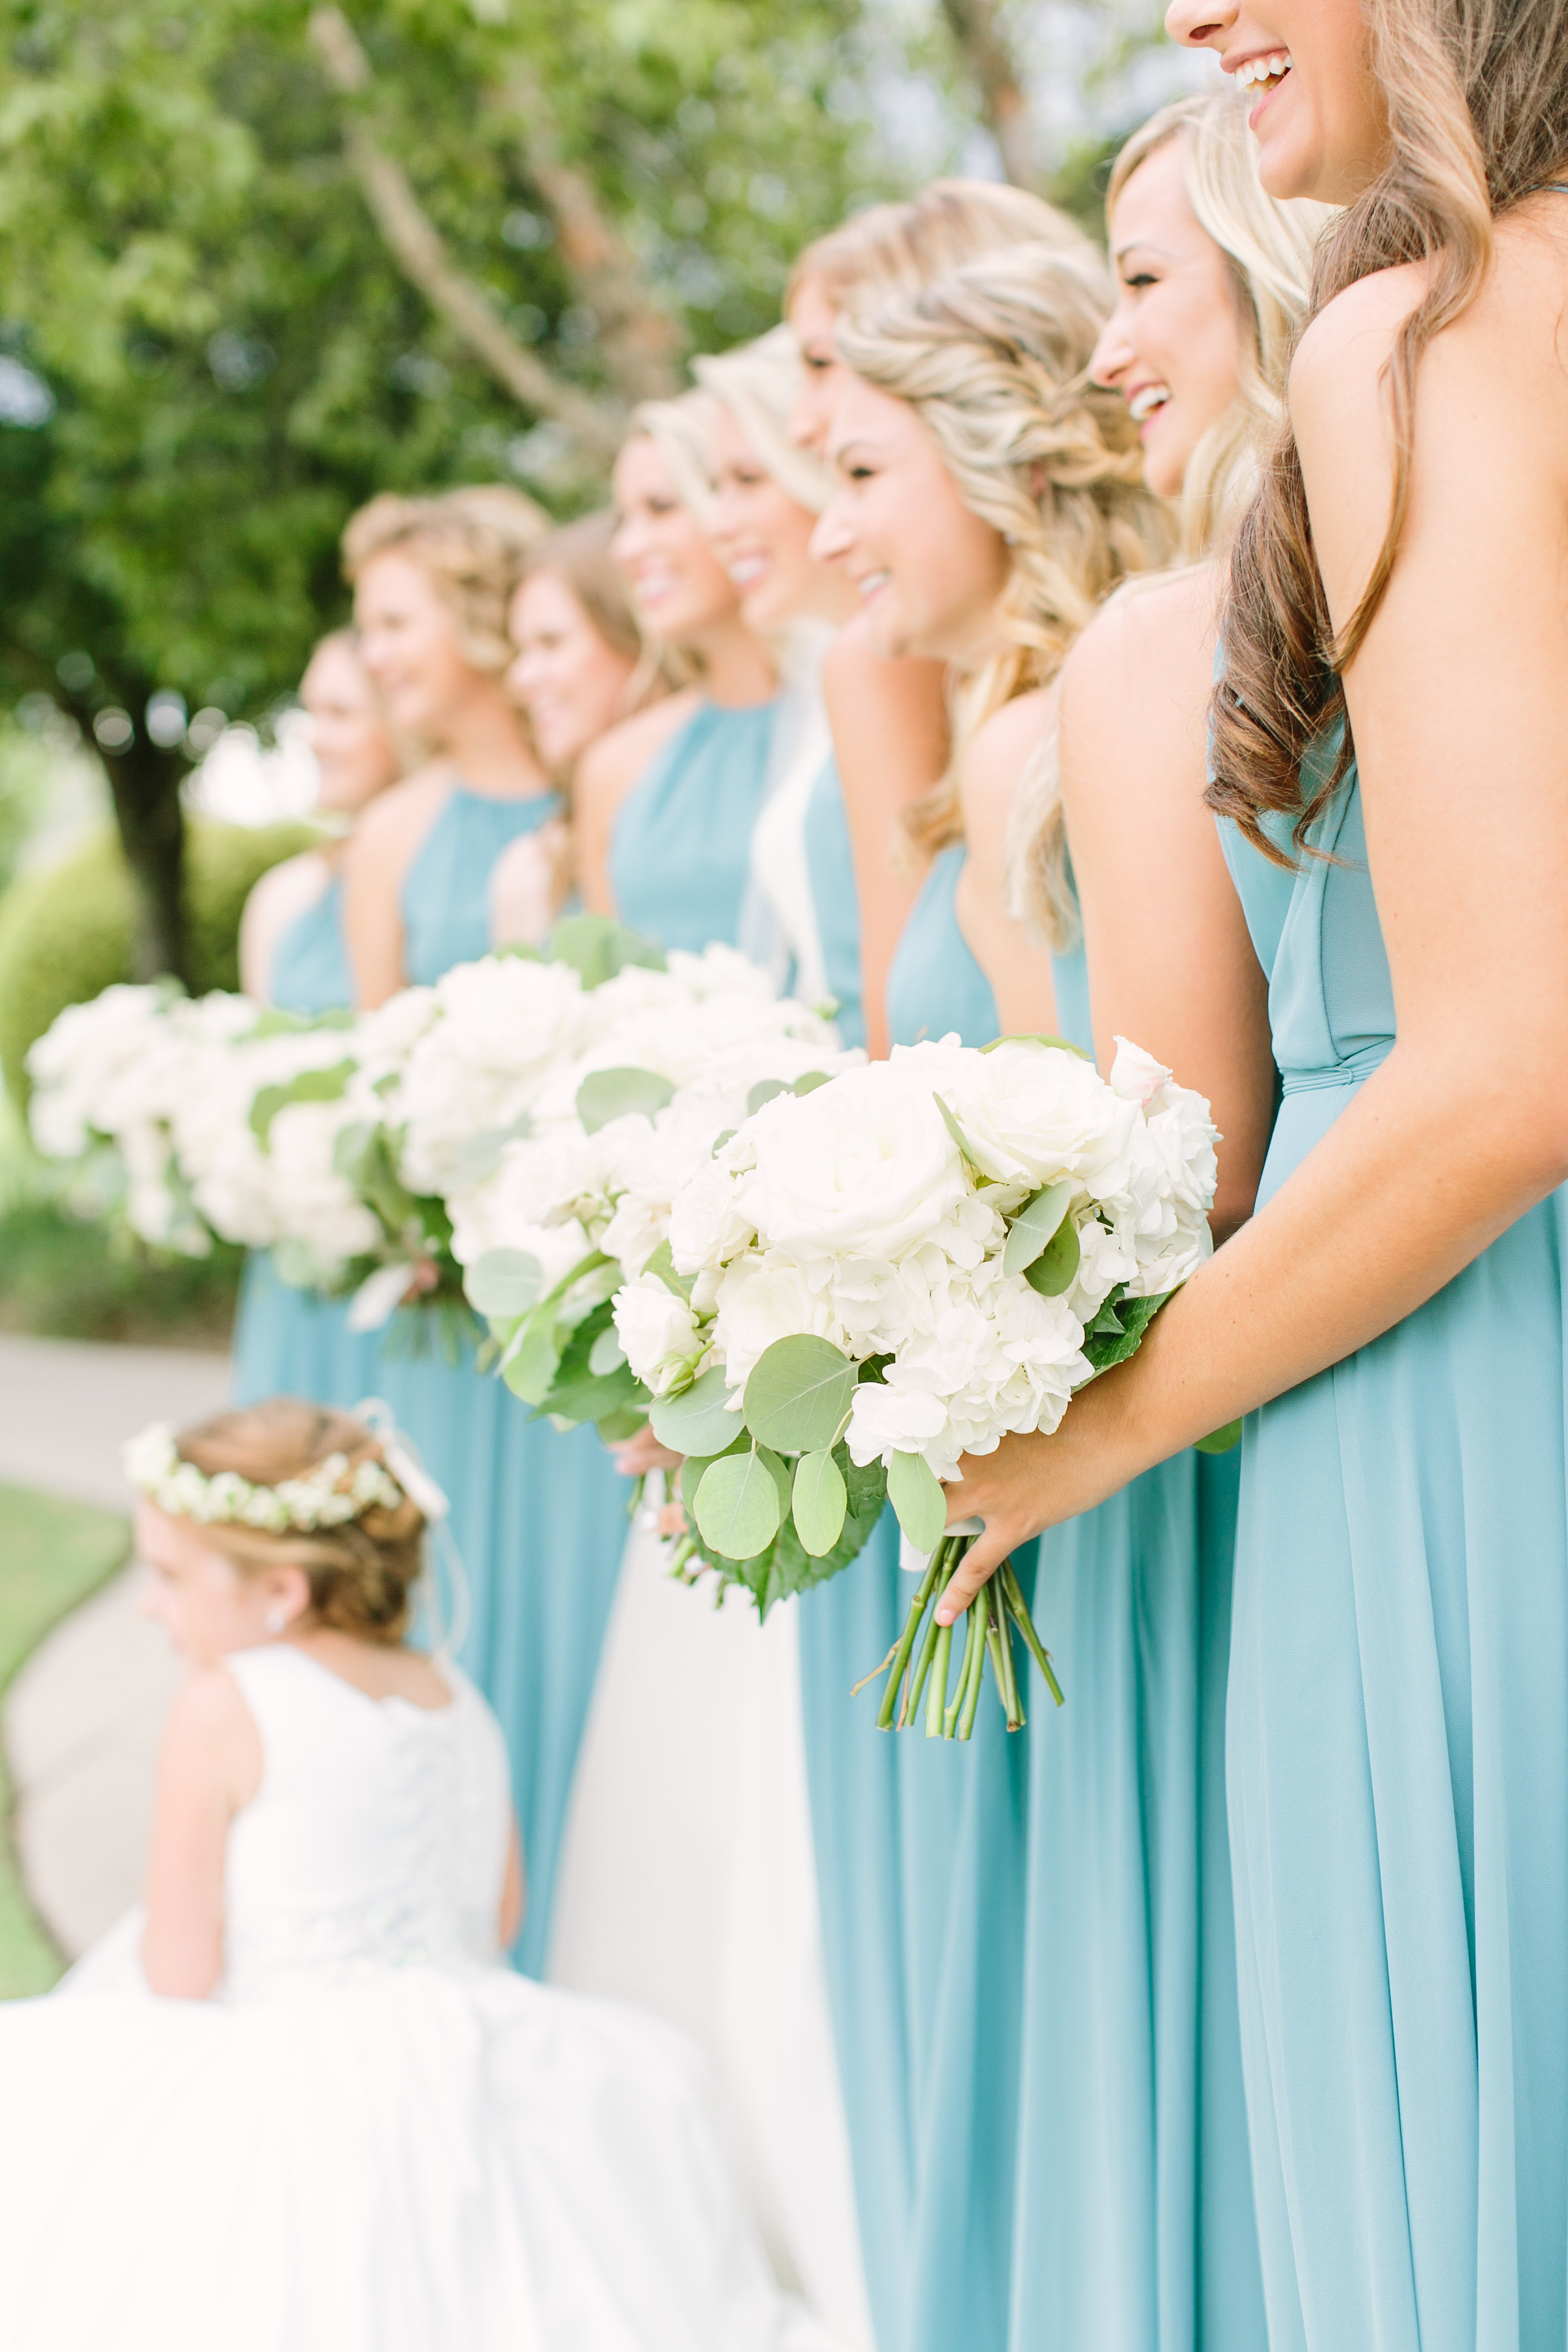 bridesmaids-teal-light-blue-dress-flower-girl-white- bouquet-floral-crown-by-maxit-flower-design-in-houston-texas